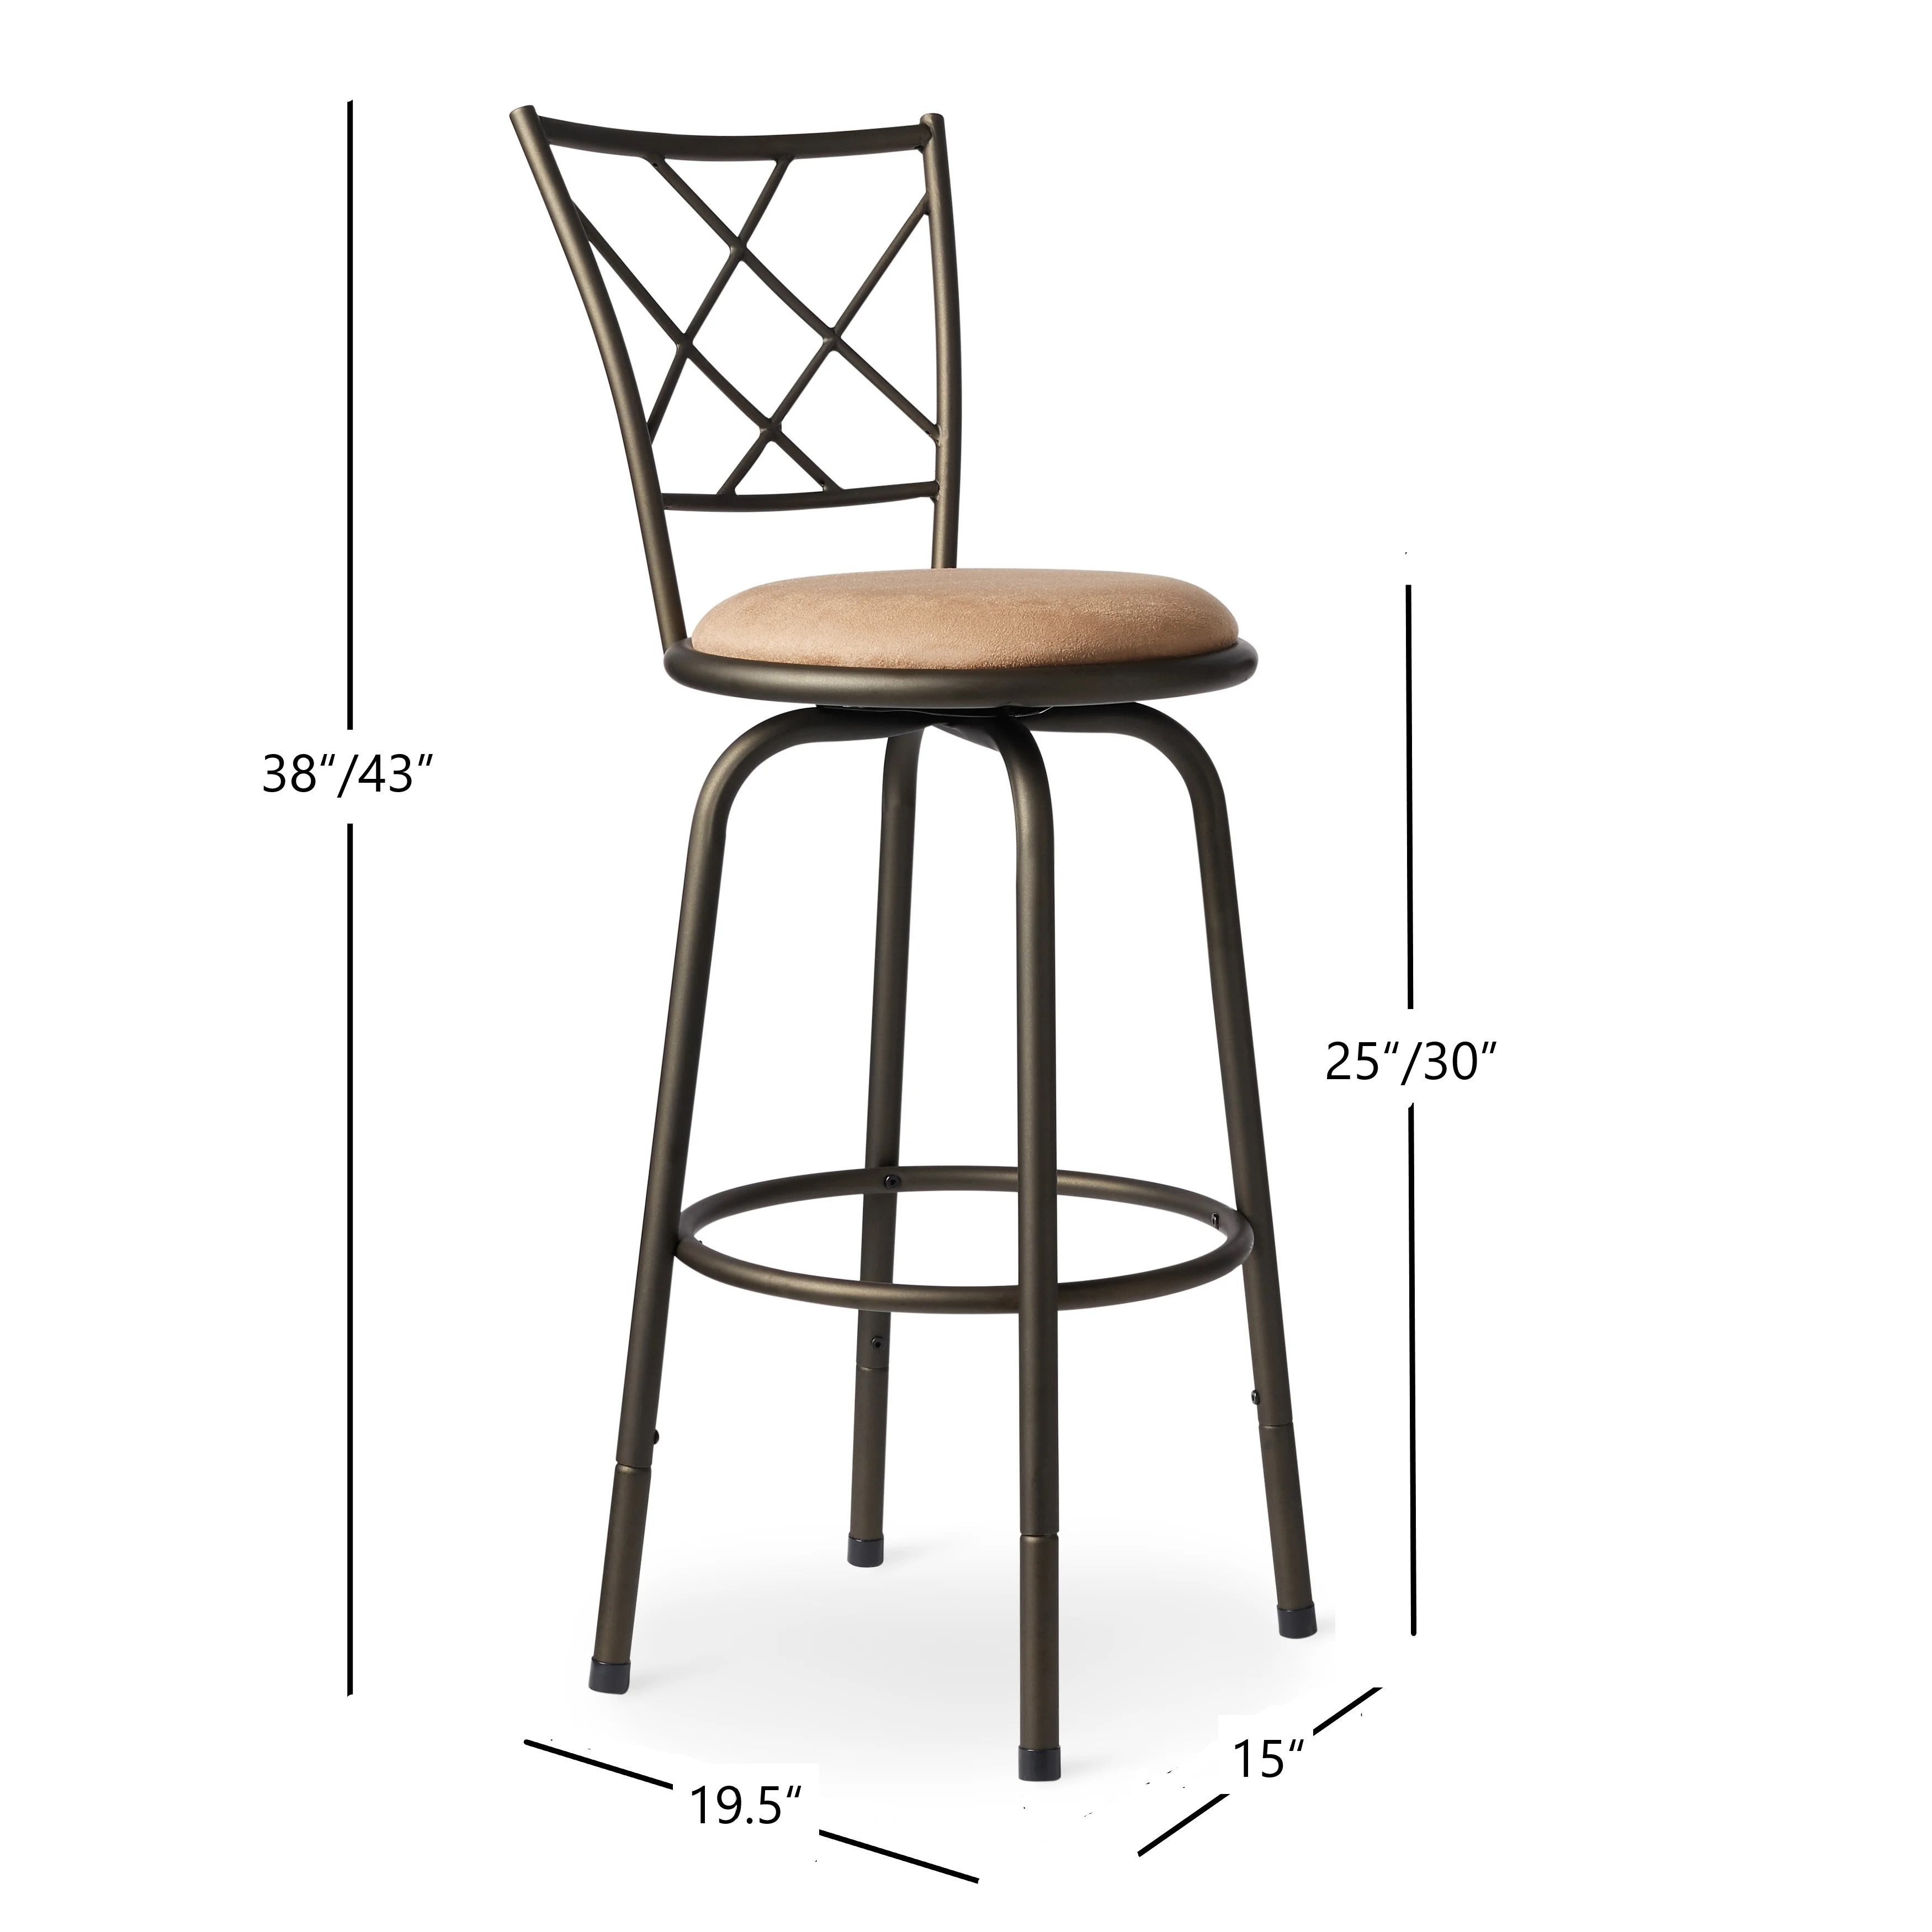 Shop avalon quarter cross adjustable swivel high back kitchen stools set of 3 by inspire q classic on sale free shipping today overstock 4302142